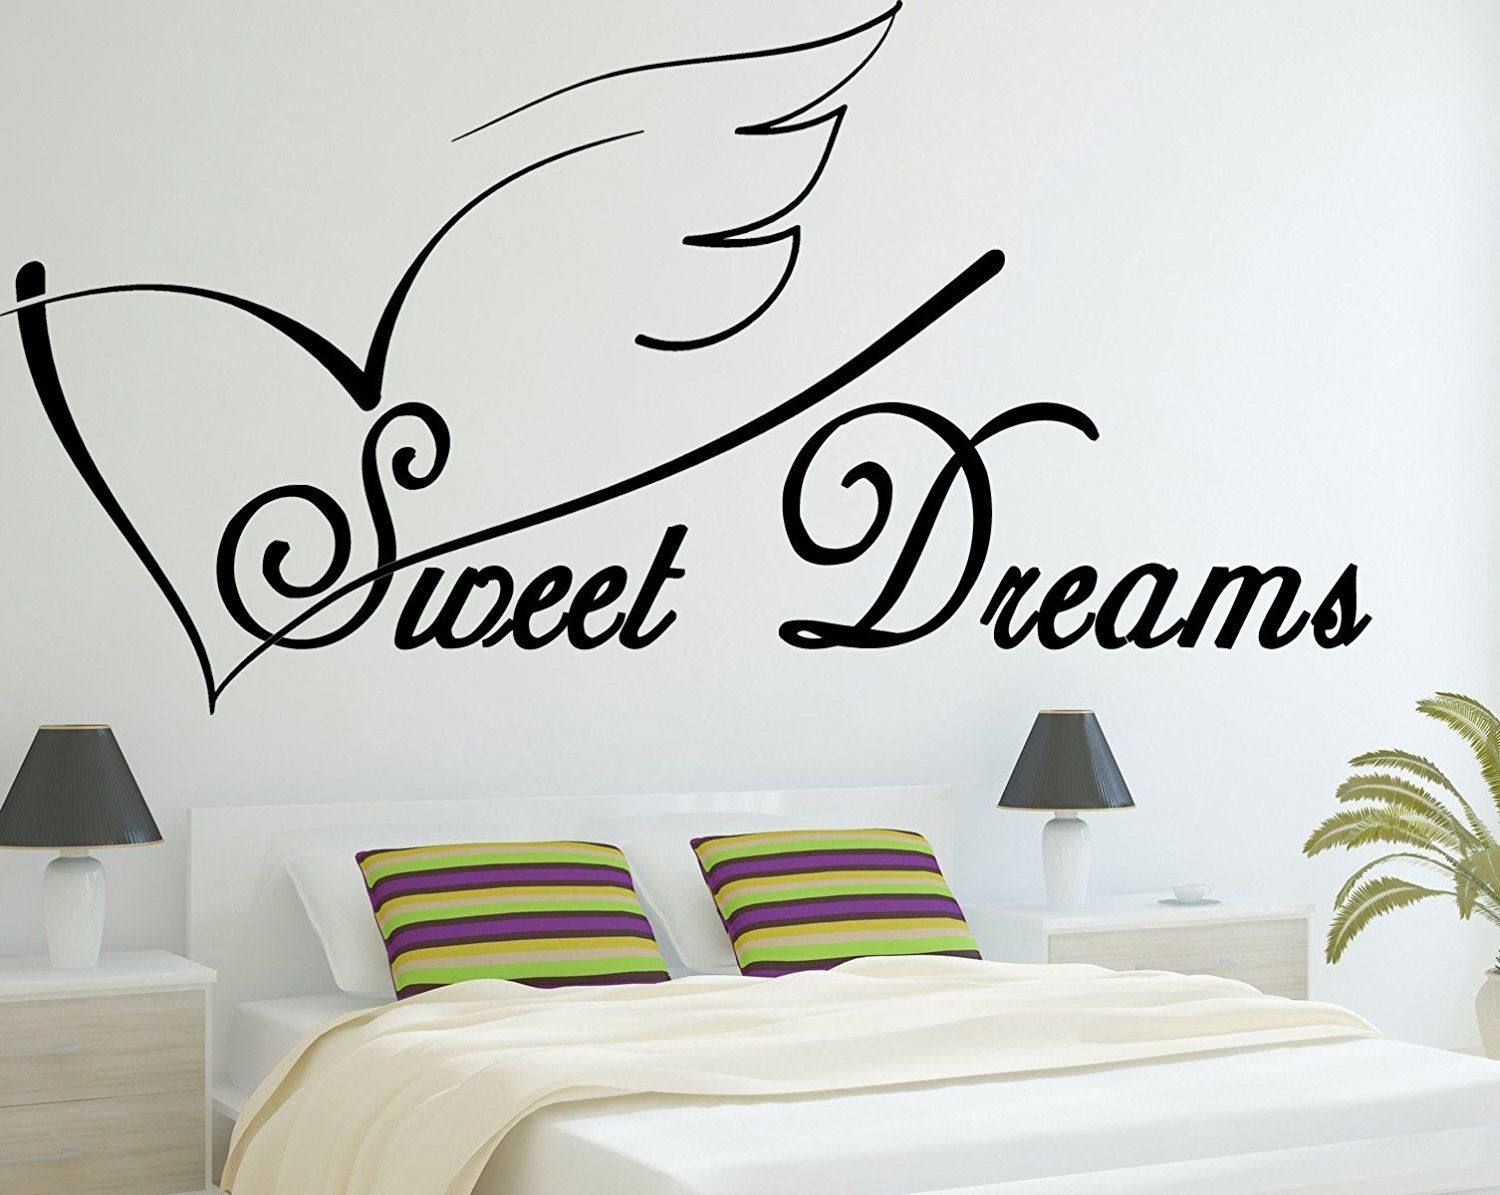 Good Sweet Dreams   Vinyl Wall Art Decal   Wall Saying   Bedroom   Sticker    Vinyl